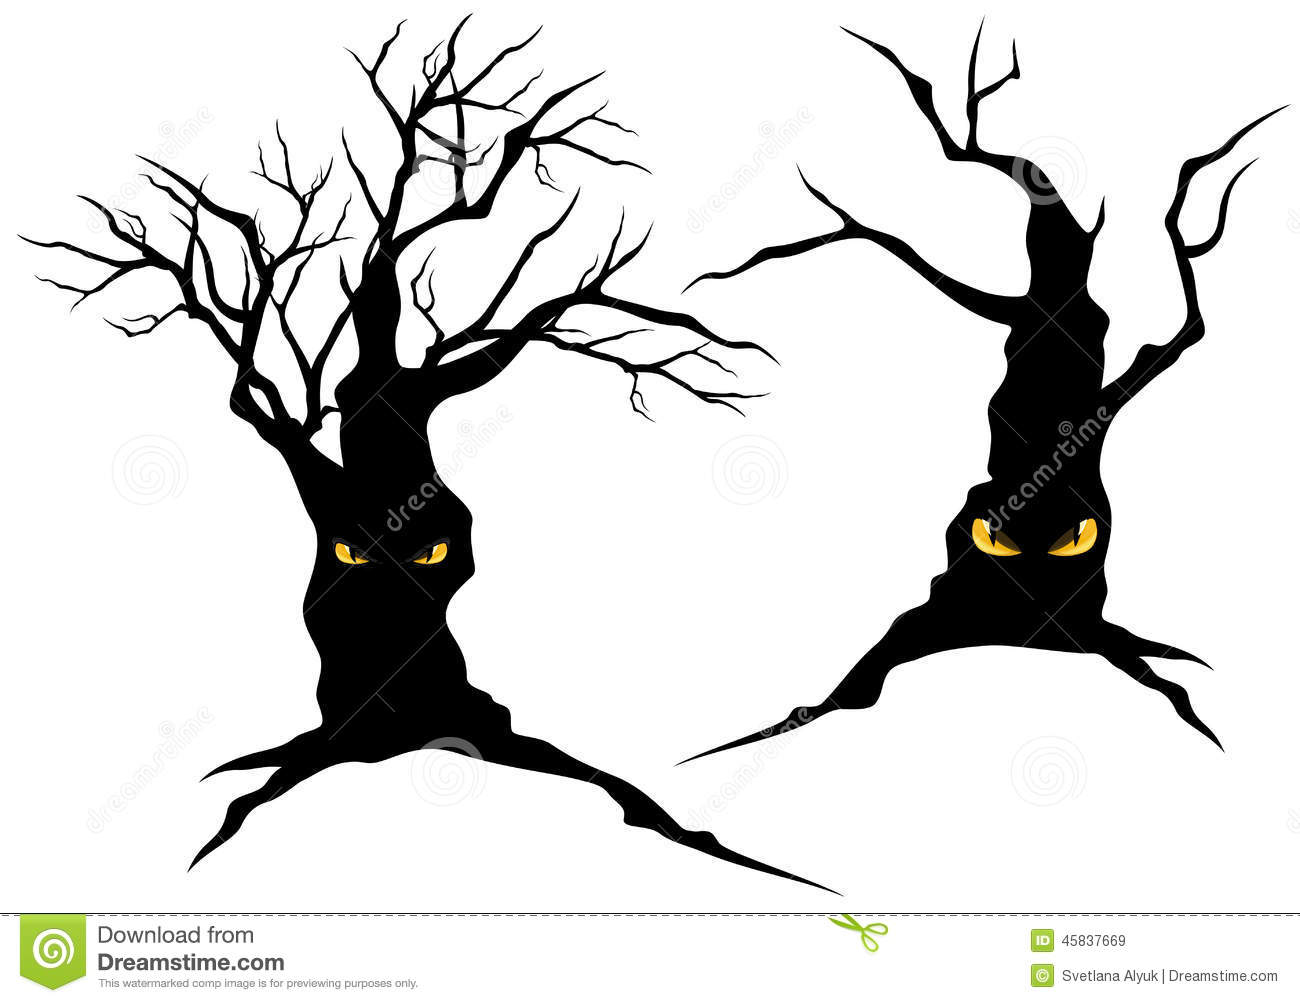 Stock Illustration Creepy Monster Trees Halloween Evil Eyes Set Vector Silhouettes Image45837669 furthermore C2NhcnkgaGFsbG93ZWVuIGdob3N0 likewise Phantom1 moreover Tribal Flame Tattoo moreover Ghost1. on scary ghost graphics